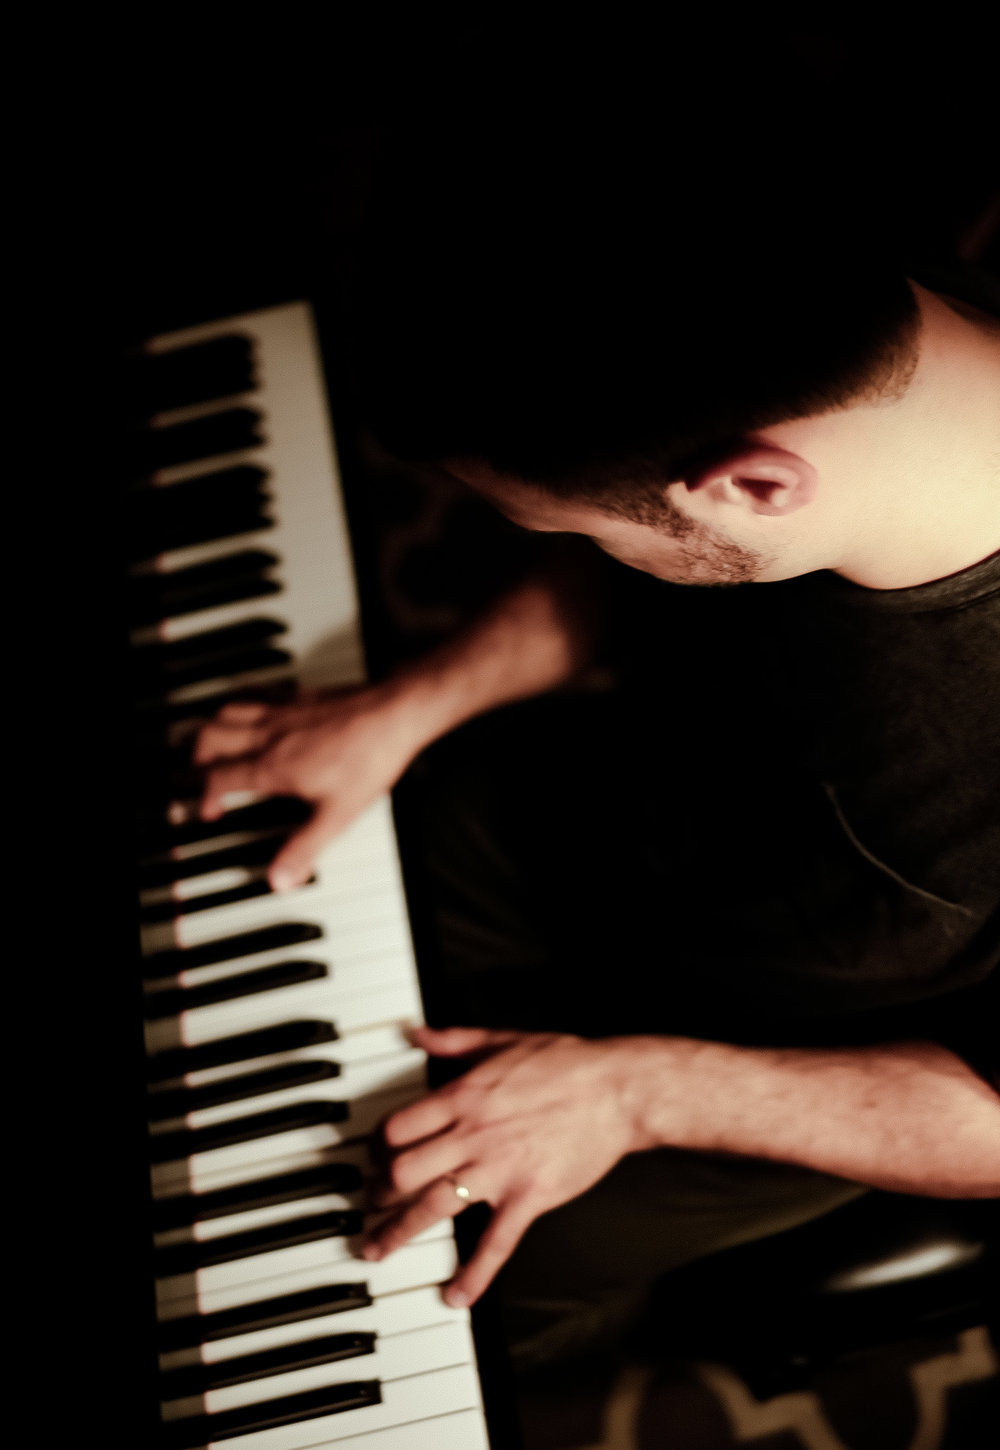 Michael Malis Solo Piano   My solo piano work, focusing on an improvisational approach to the piano. Recordings forthcoming.